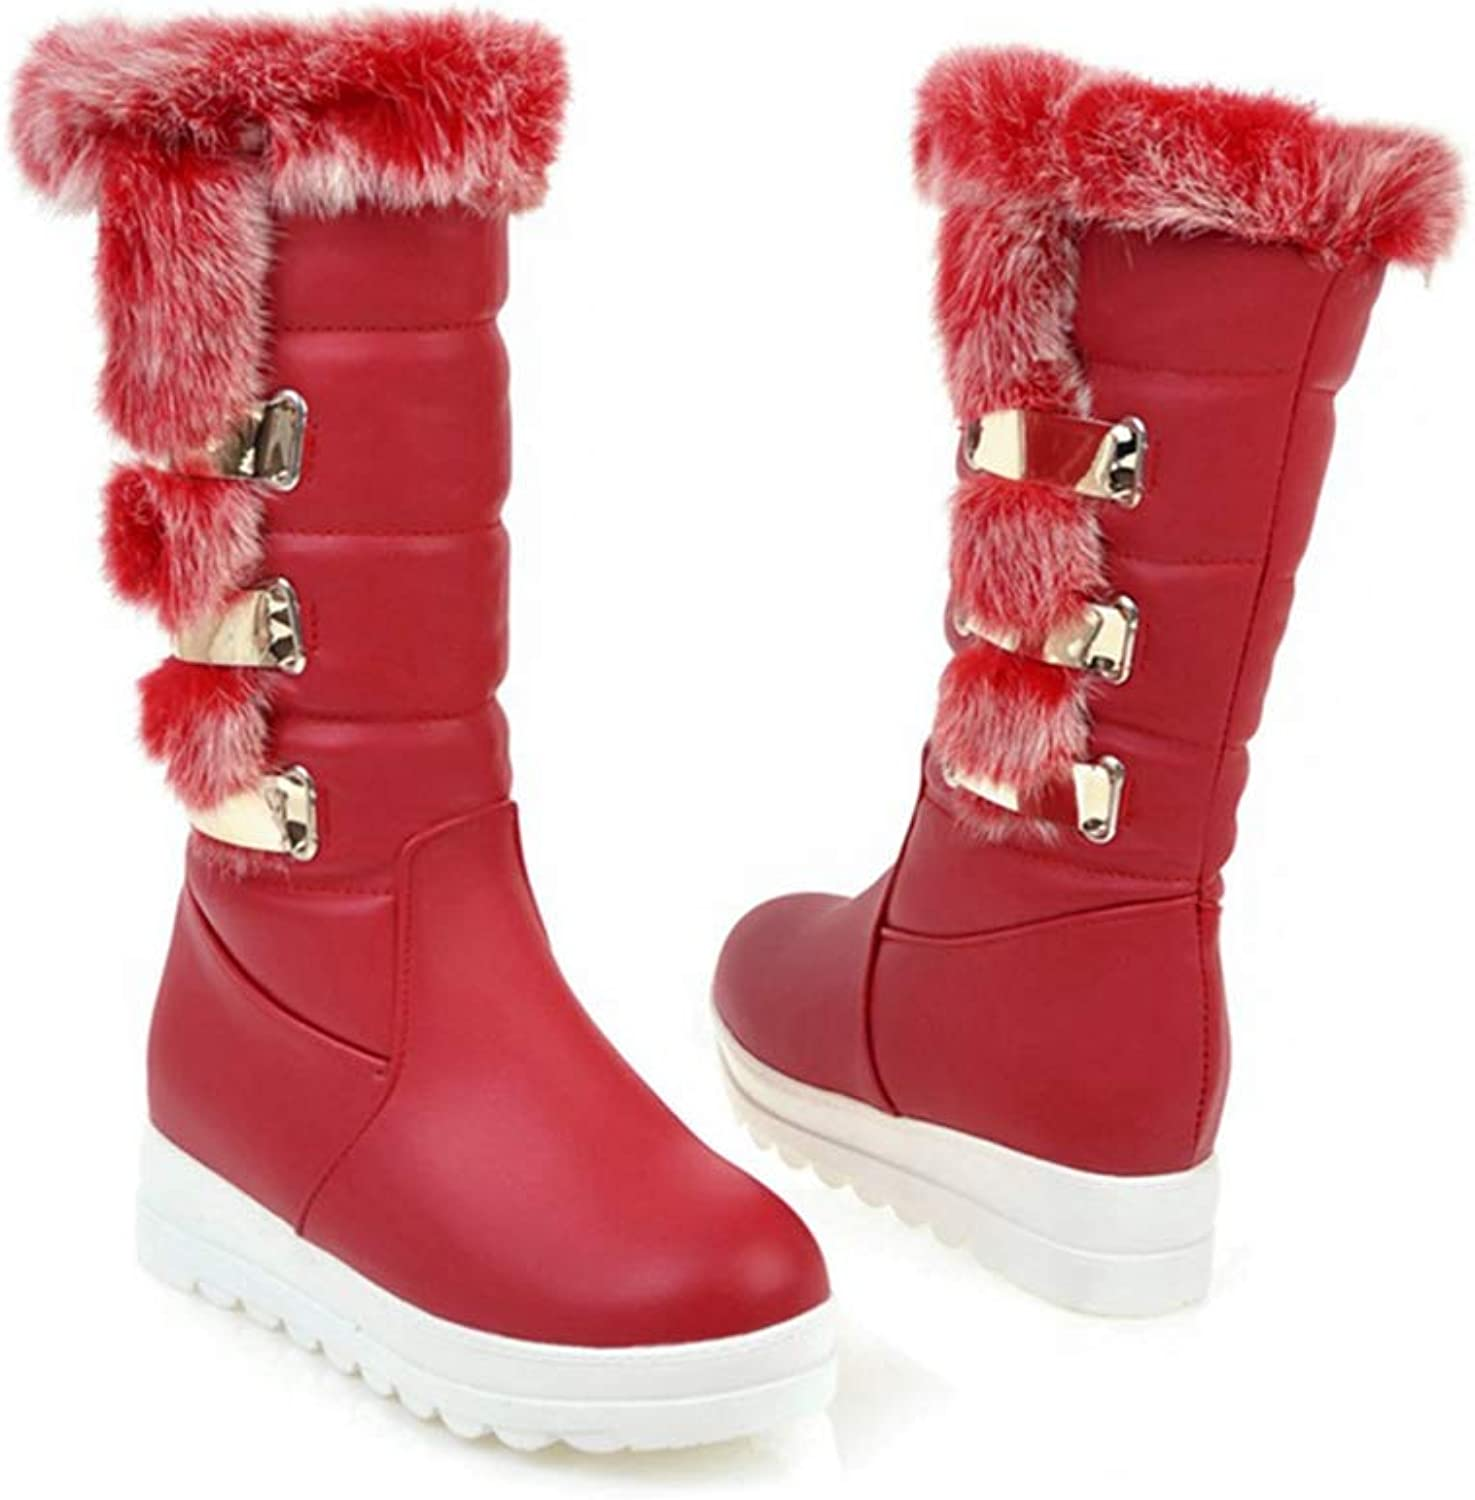 T-JULY Women's Winter Snow Boots Wedge Platform Plush Footwear Mid Calf shoes